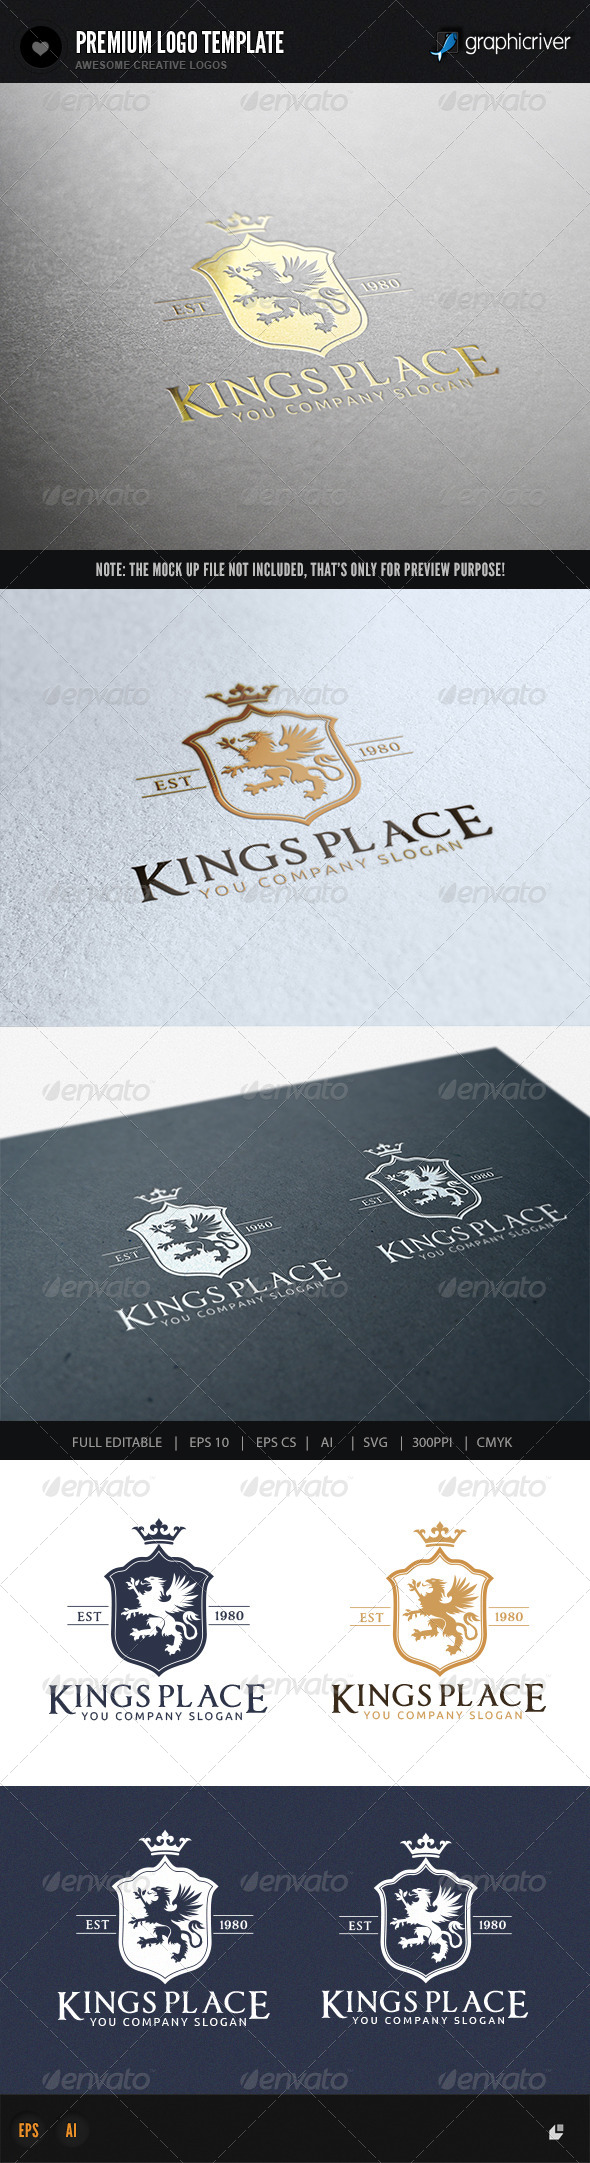 GraphicRiver Kings Place II 7397442